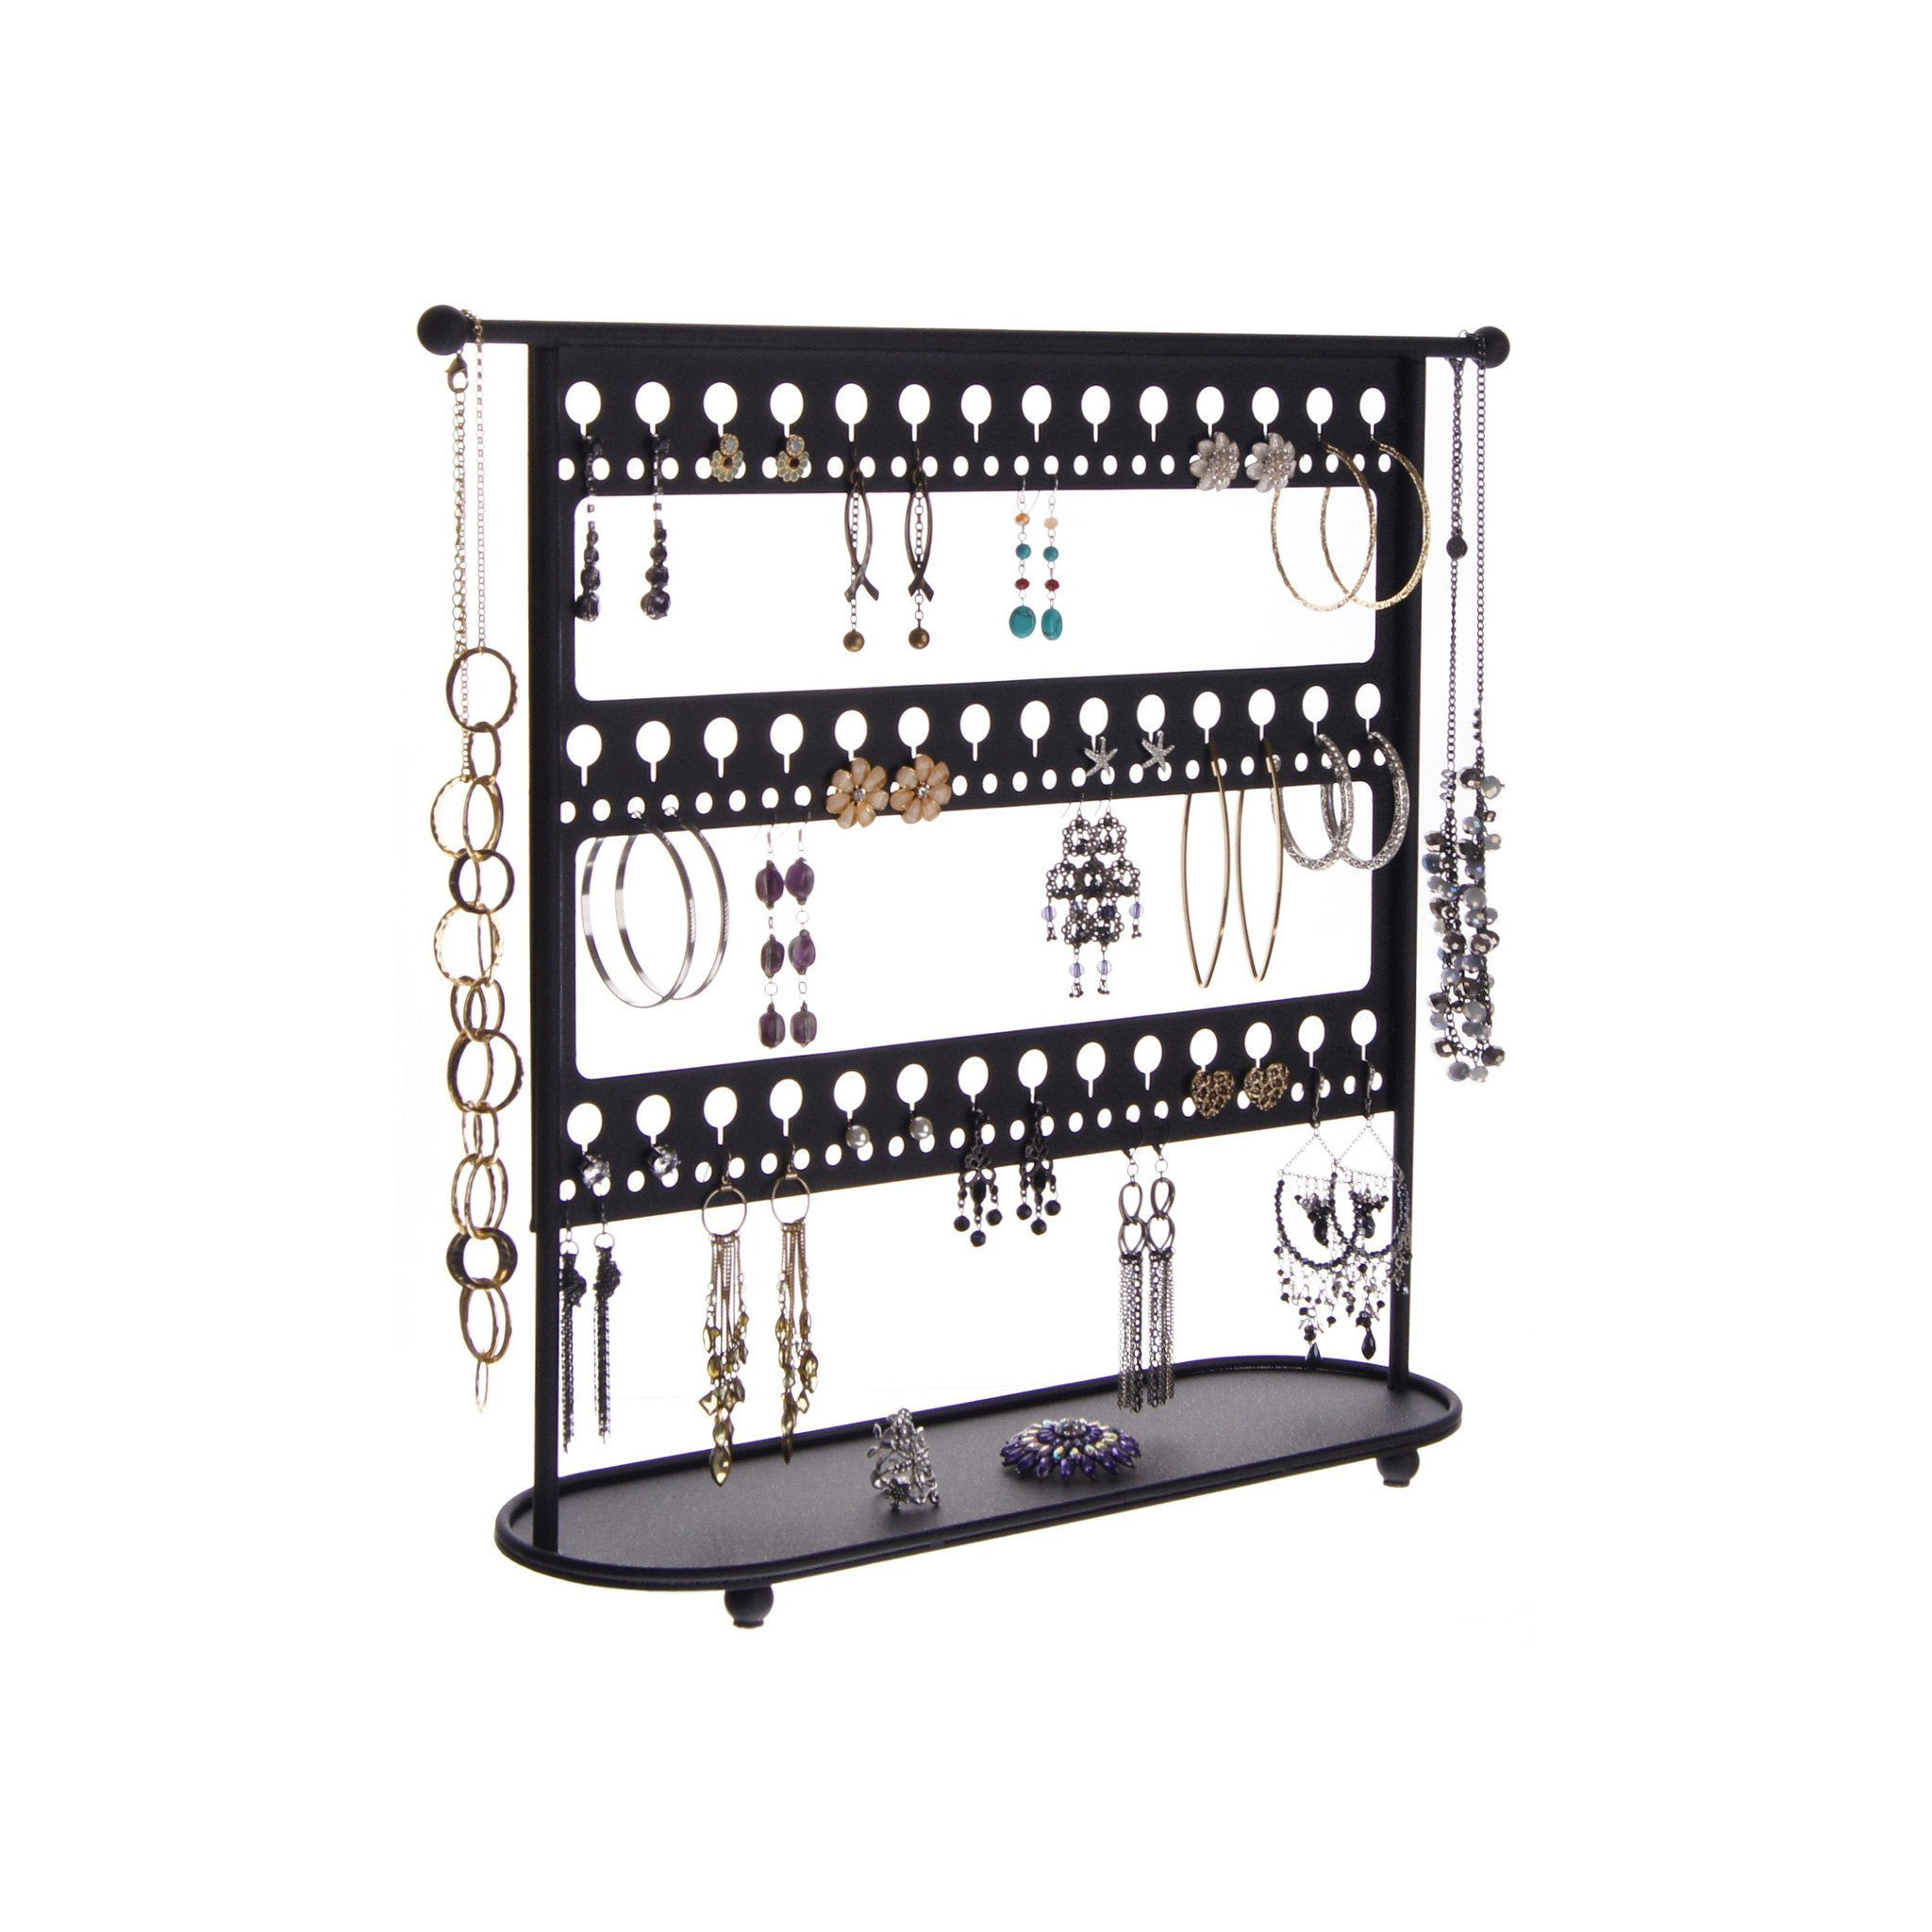 Earring Holder Organizer Stand Hanging Jewelry Display Necklace Tree Storage Rack with Tray, Laela Black